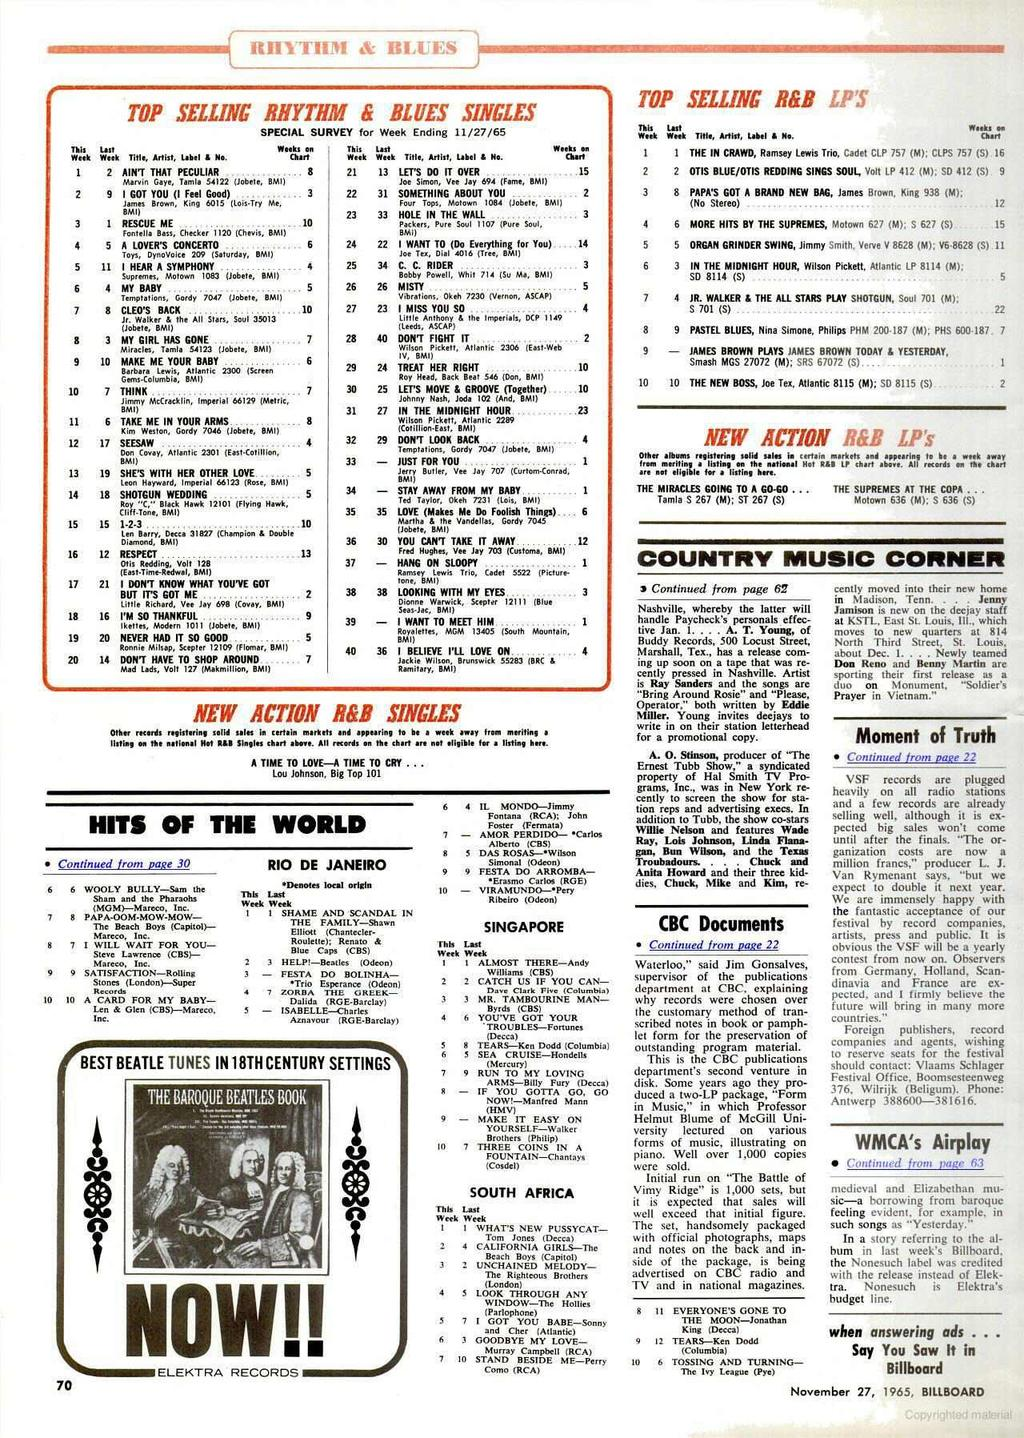 RHYTHM & BLUES, Tis Week use Week TOP SELLING' RHYTHM & Title, Artist, Label i No. BLUES SINGLES SPECIAL SURVEY for Week Ending 11/27/65 Weepart k s on This Week Last Week Title, Artist, Label i No.